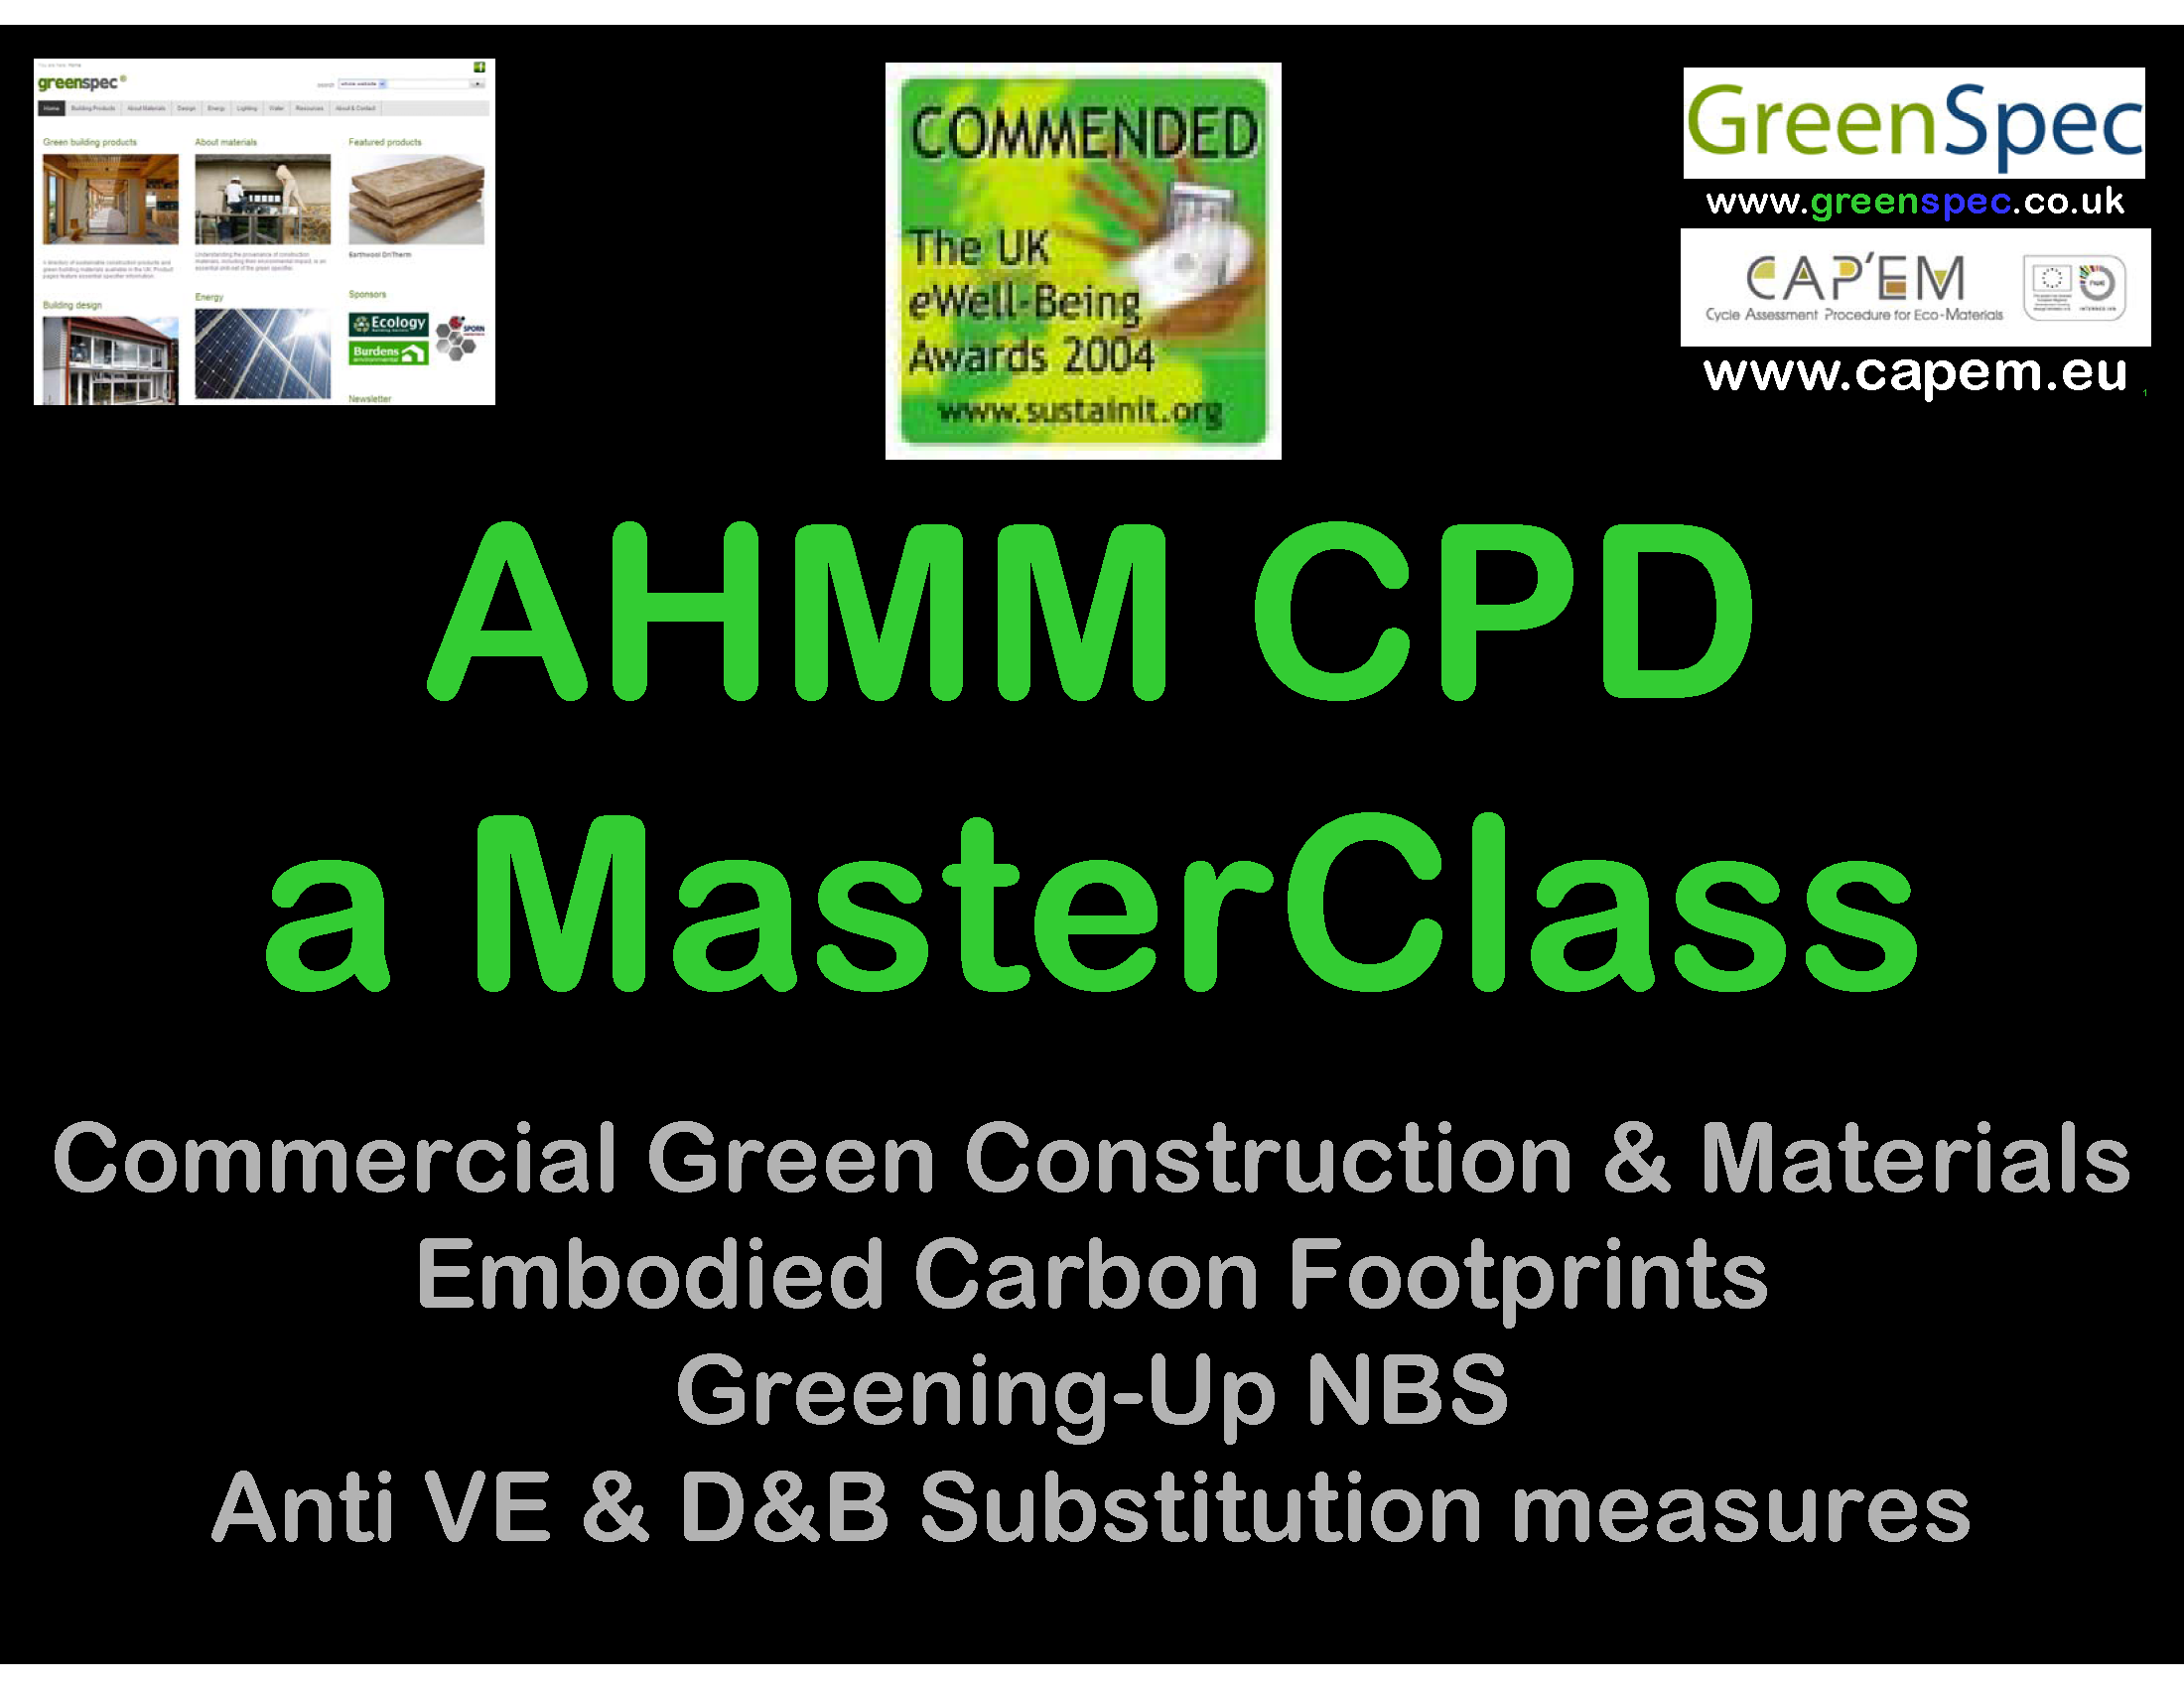 AHMM CPD Cover Page 1 png